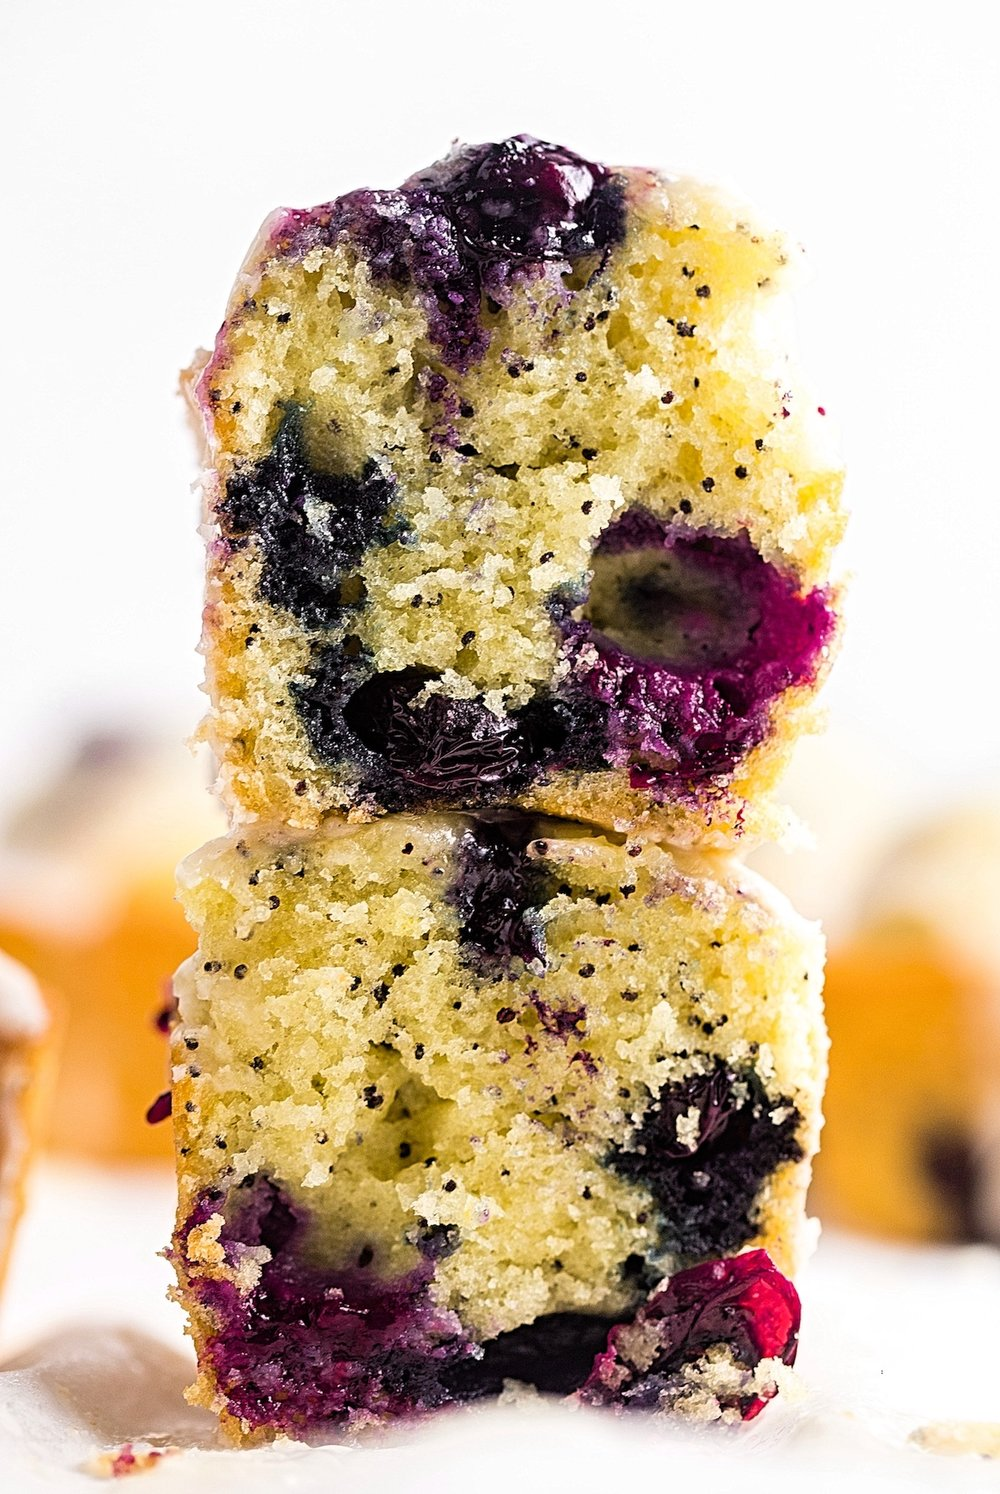 Mini Blueberry Poppy Seed Loaves: tender, light, fluffy loaf cakes filled with poppy seeds and juicy, fresh blueberries. Quick and dairy-free! | Trufflesandtrends.com